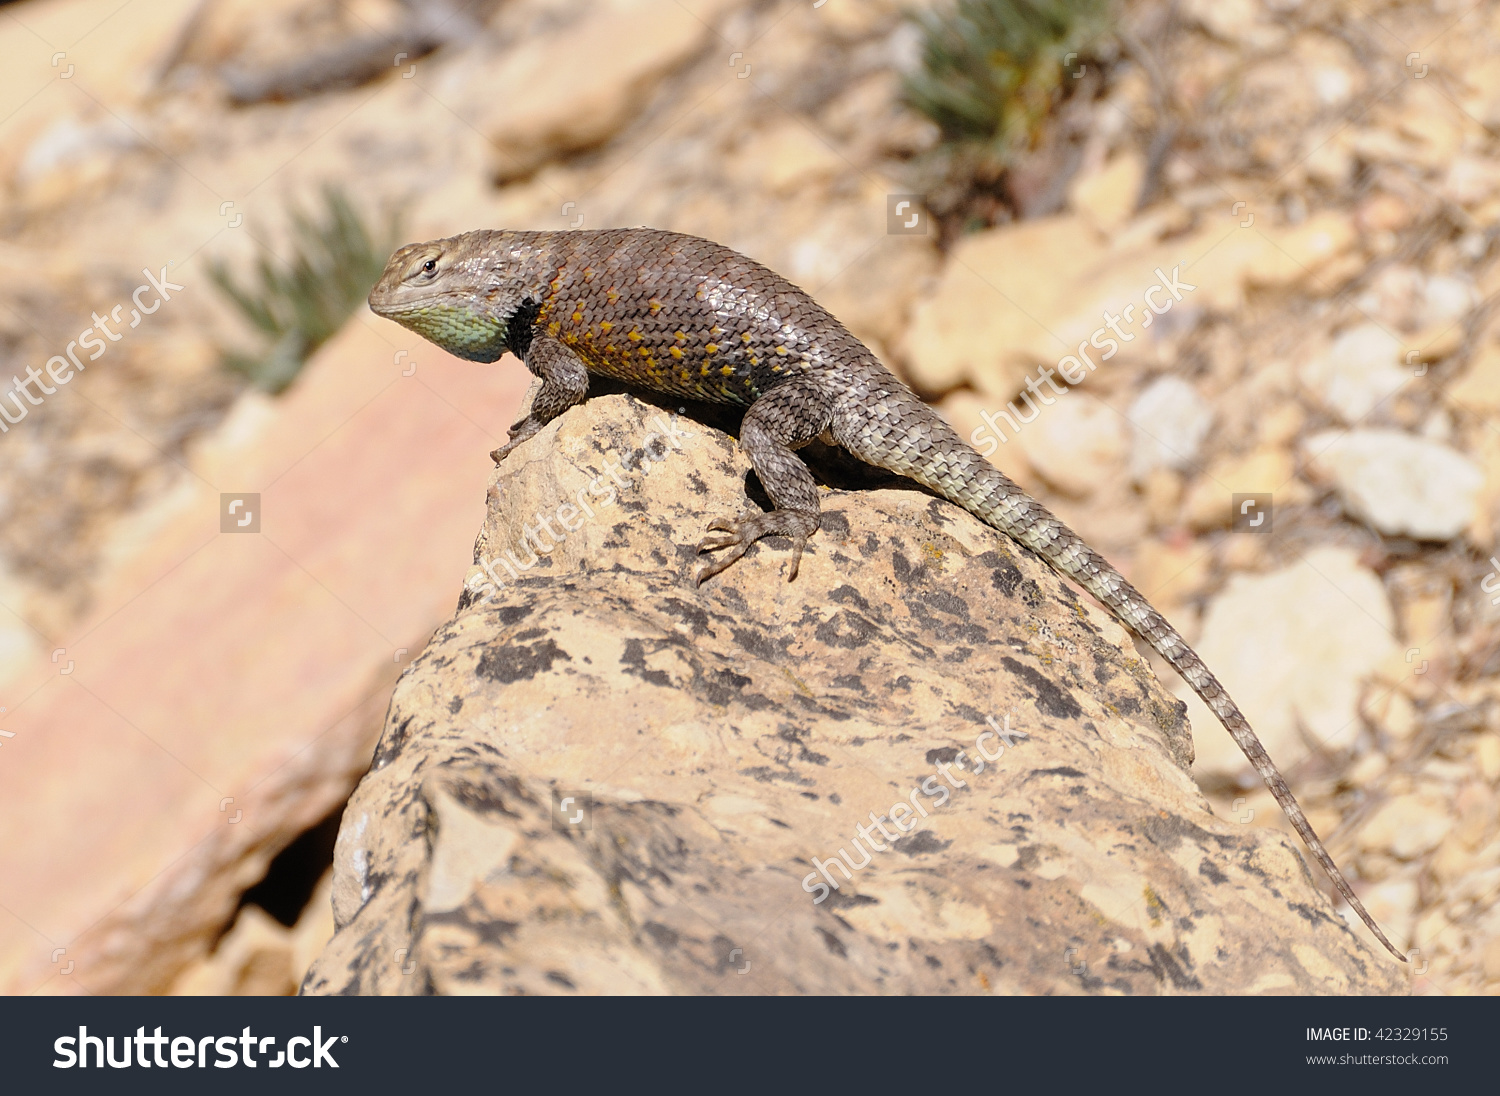 Desert Spiny Lizard In Grand Canyon Stock Photo 42329155.